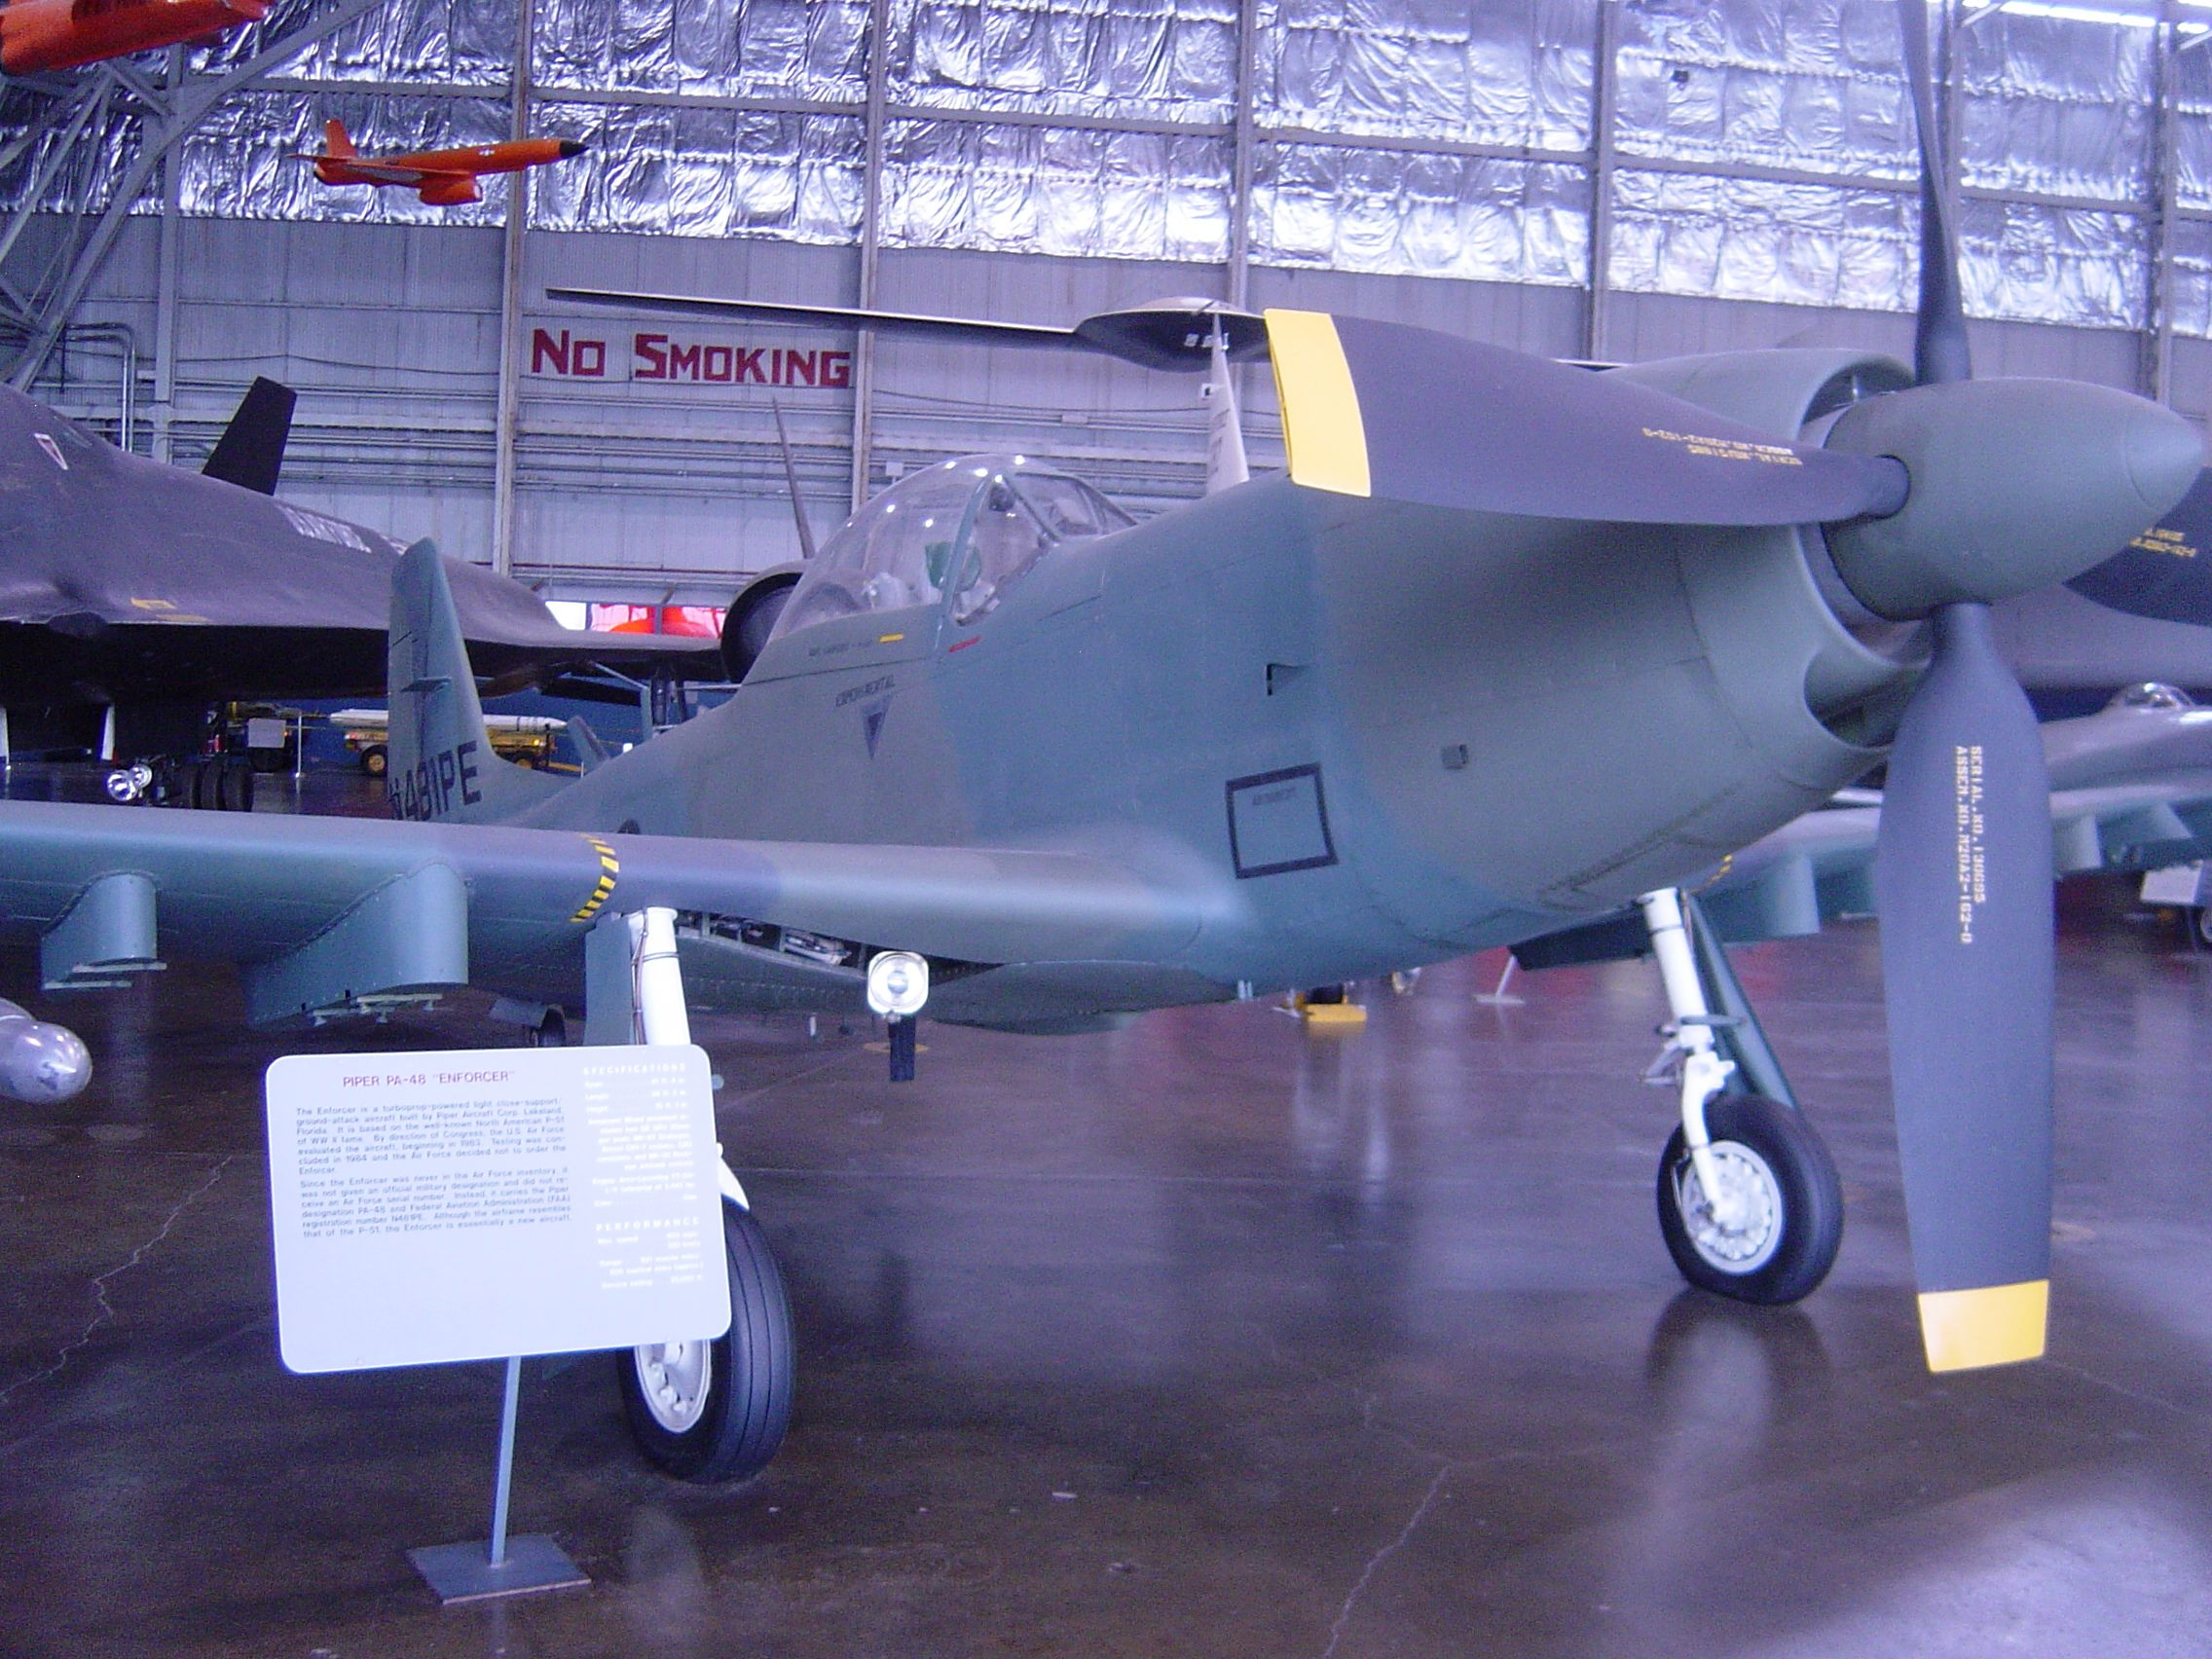 A Piper PA48 Enforcer fighter, built in Lakeland, Florida